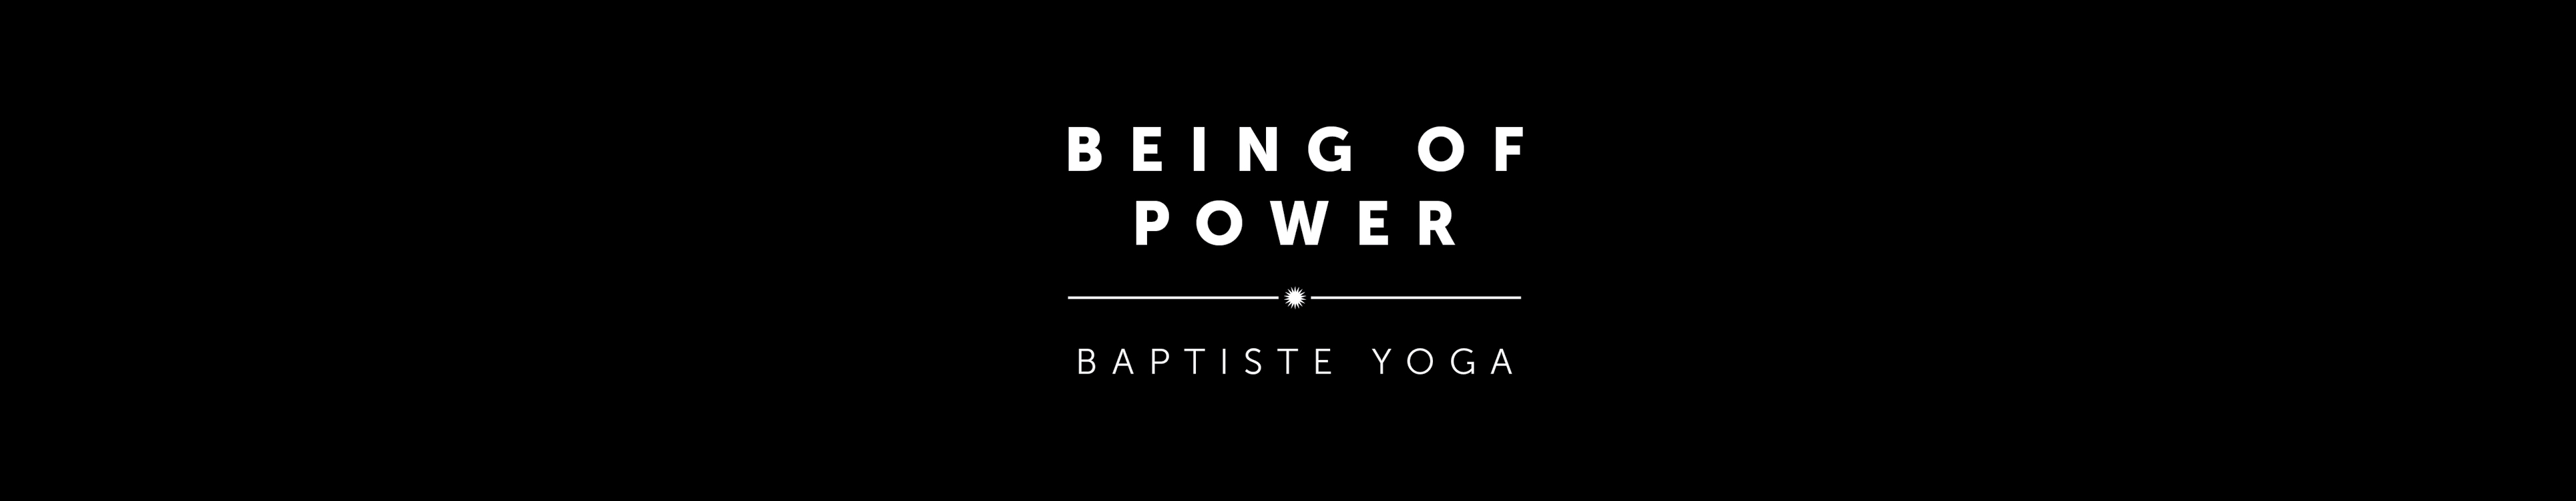 Soul Yoga & Wellness | Being of Power